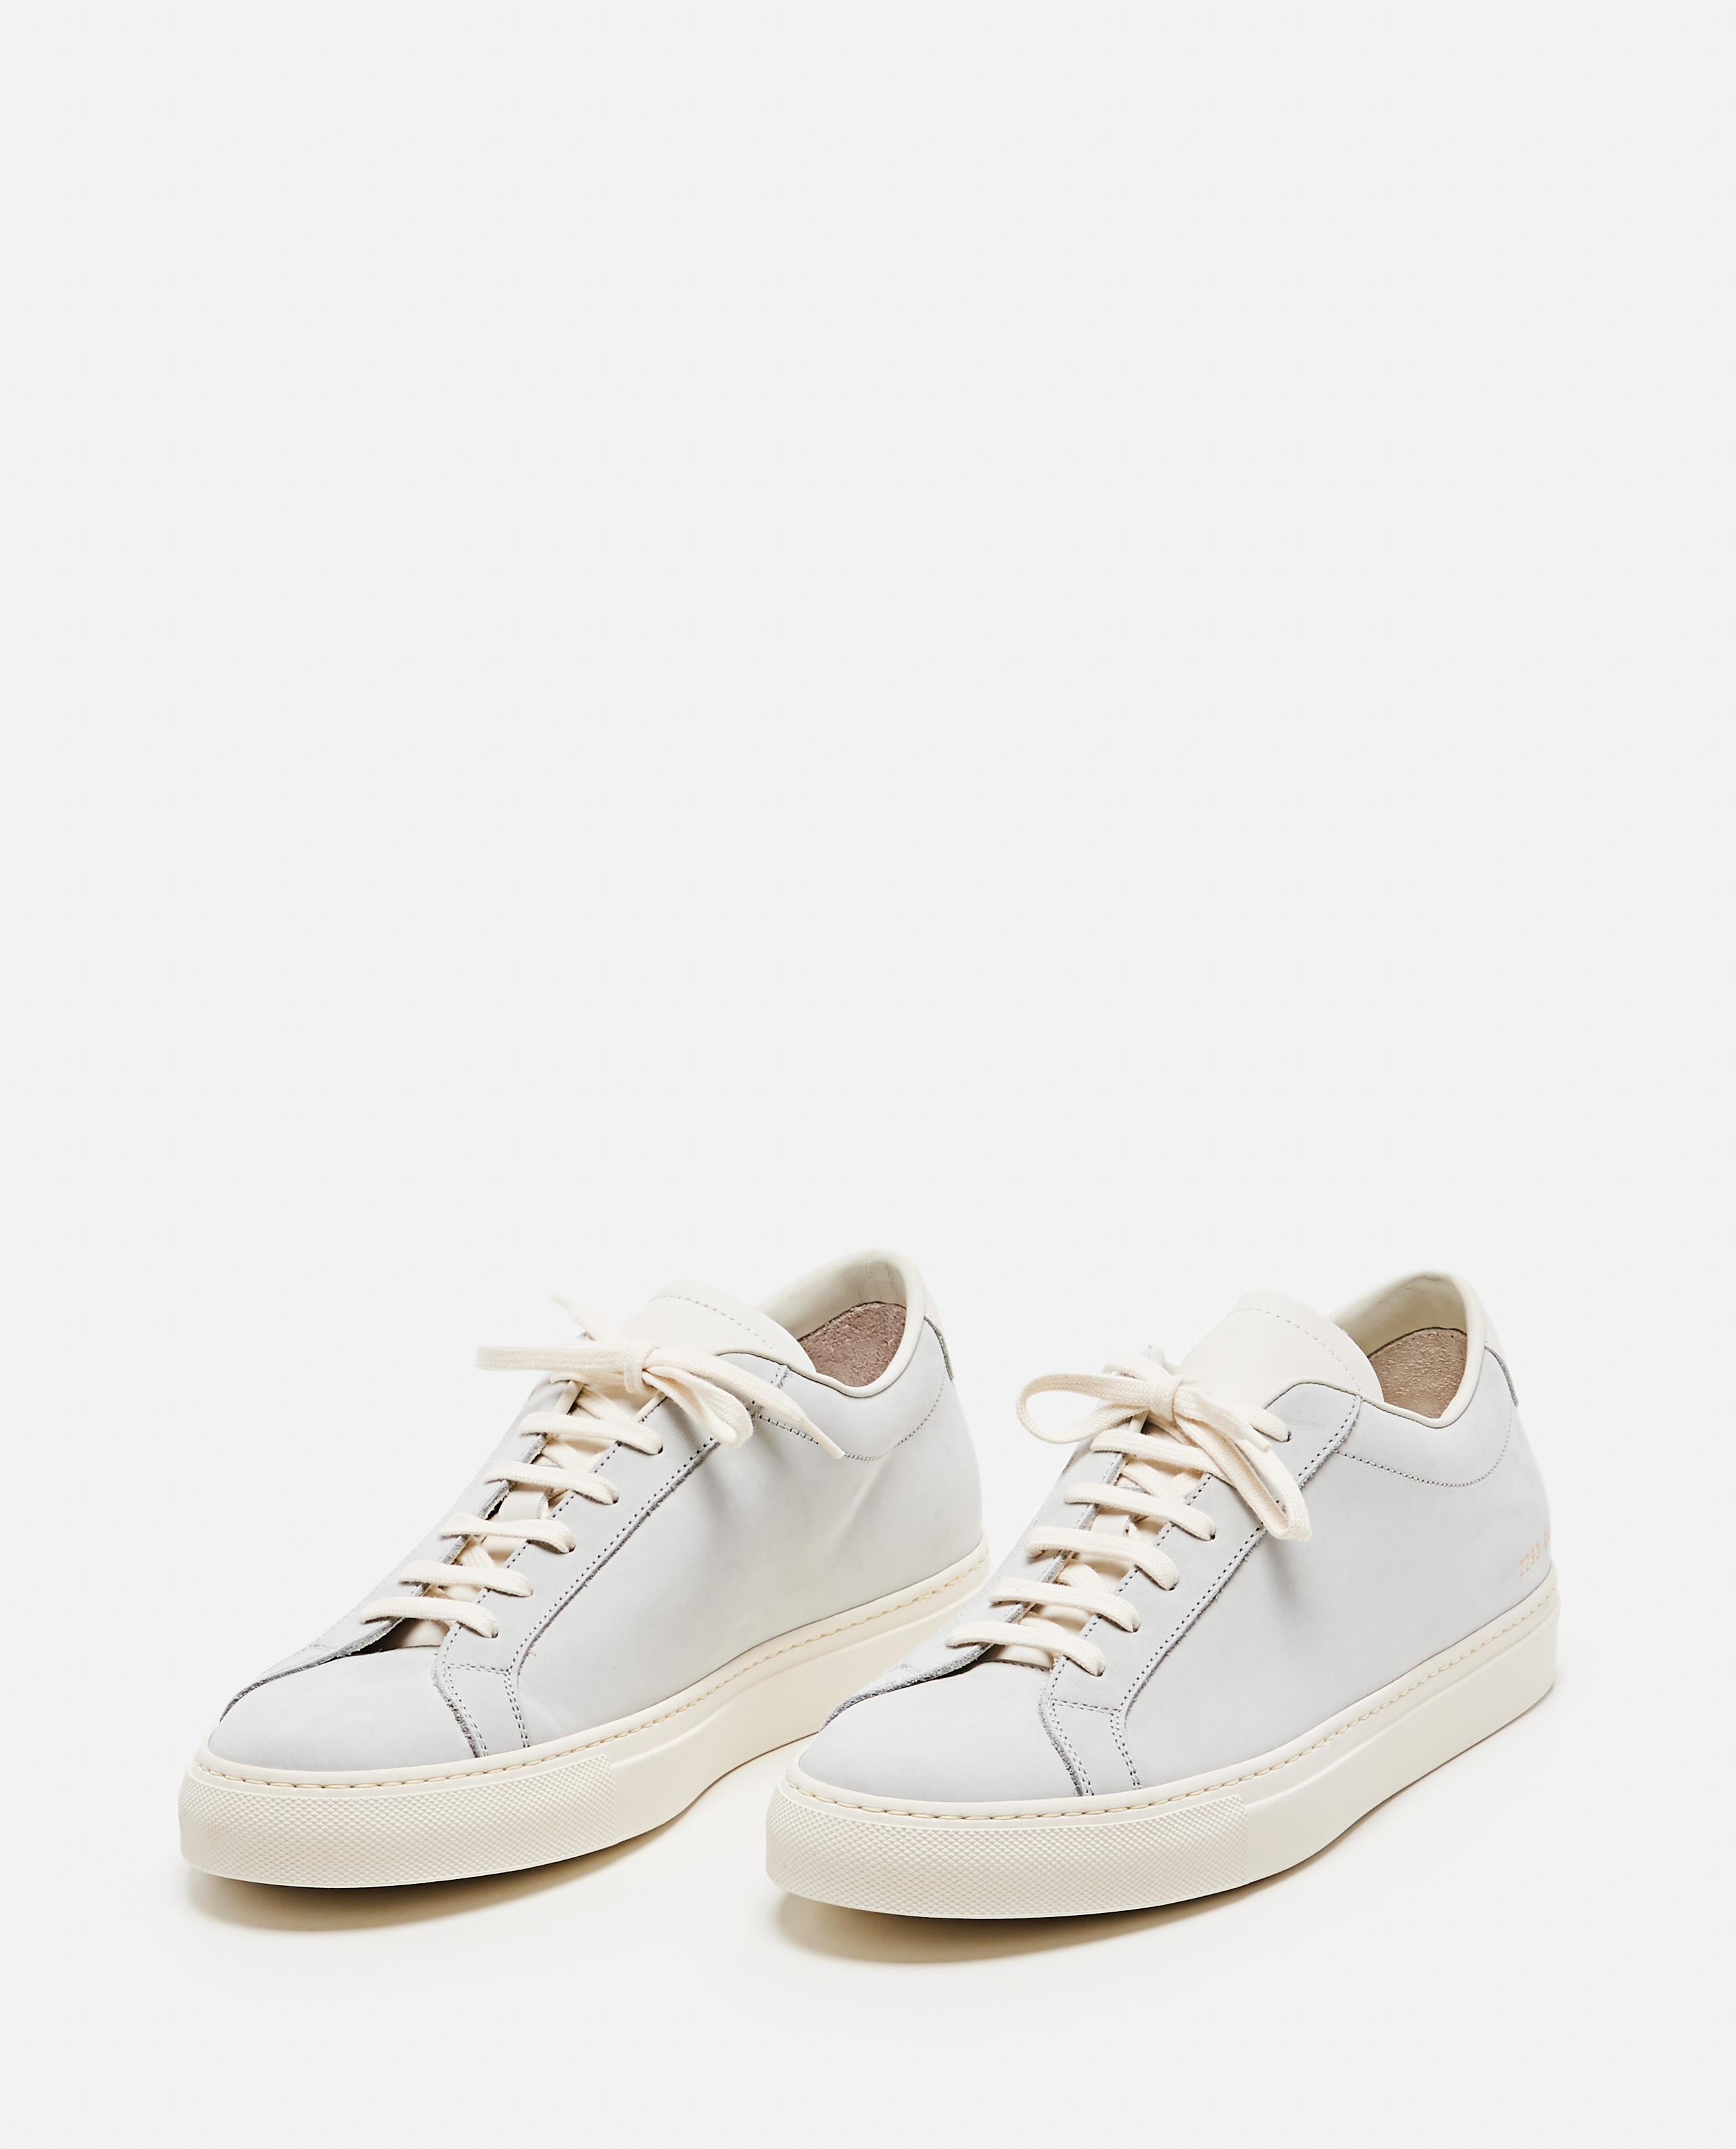 Sneakers Achilles Low in pelle nabuk Uomo Common Projects 000305520044800 2